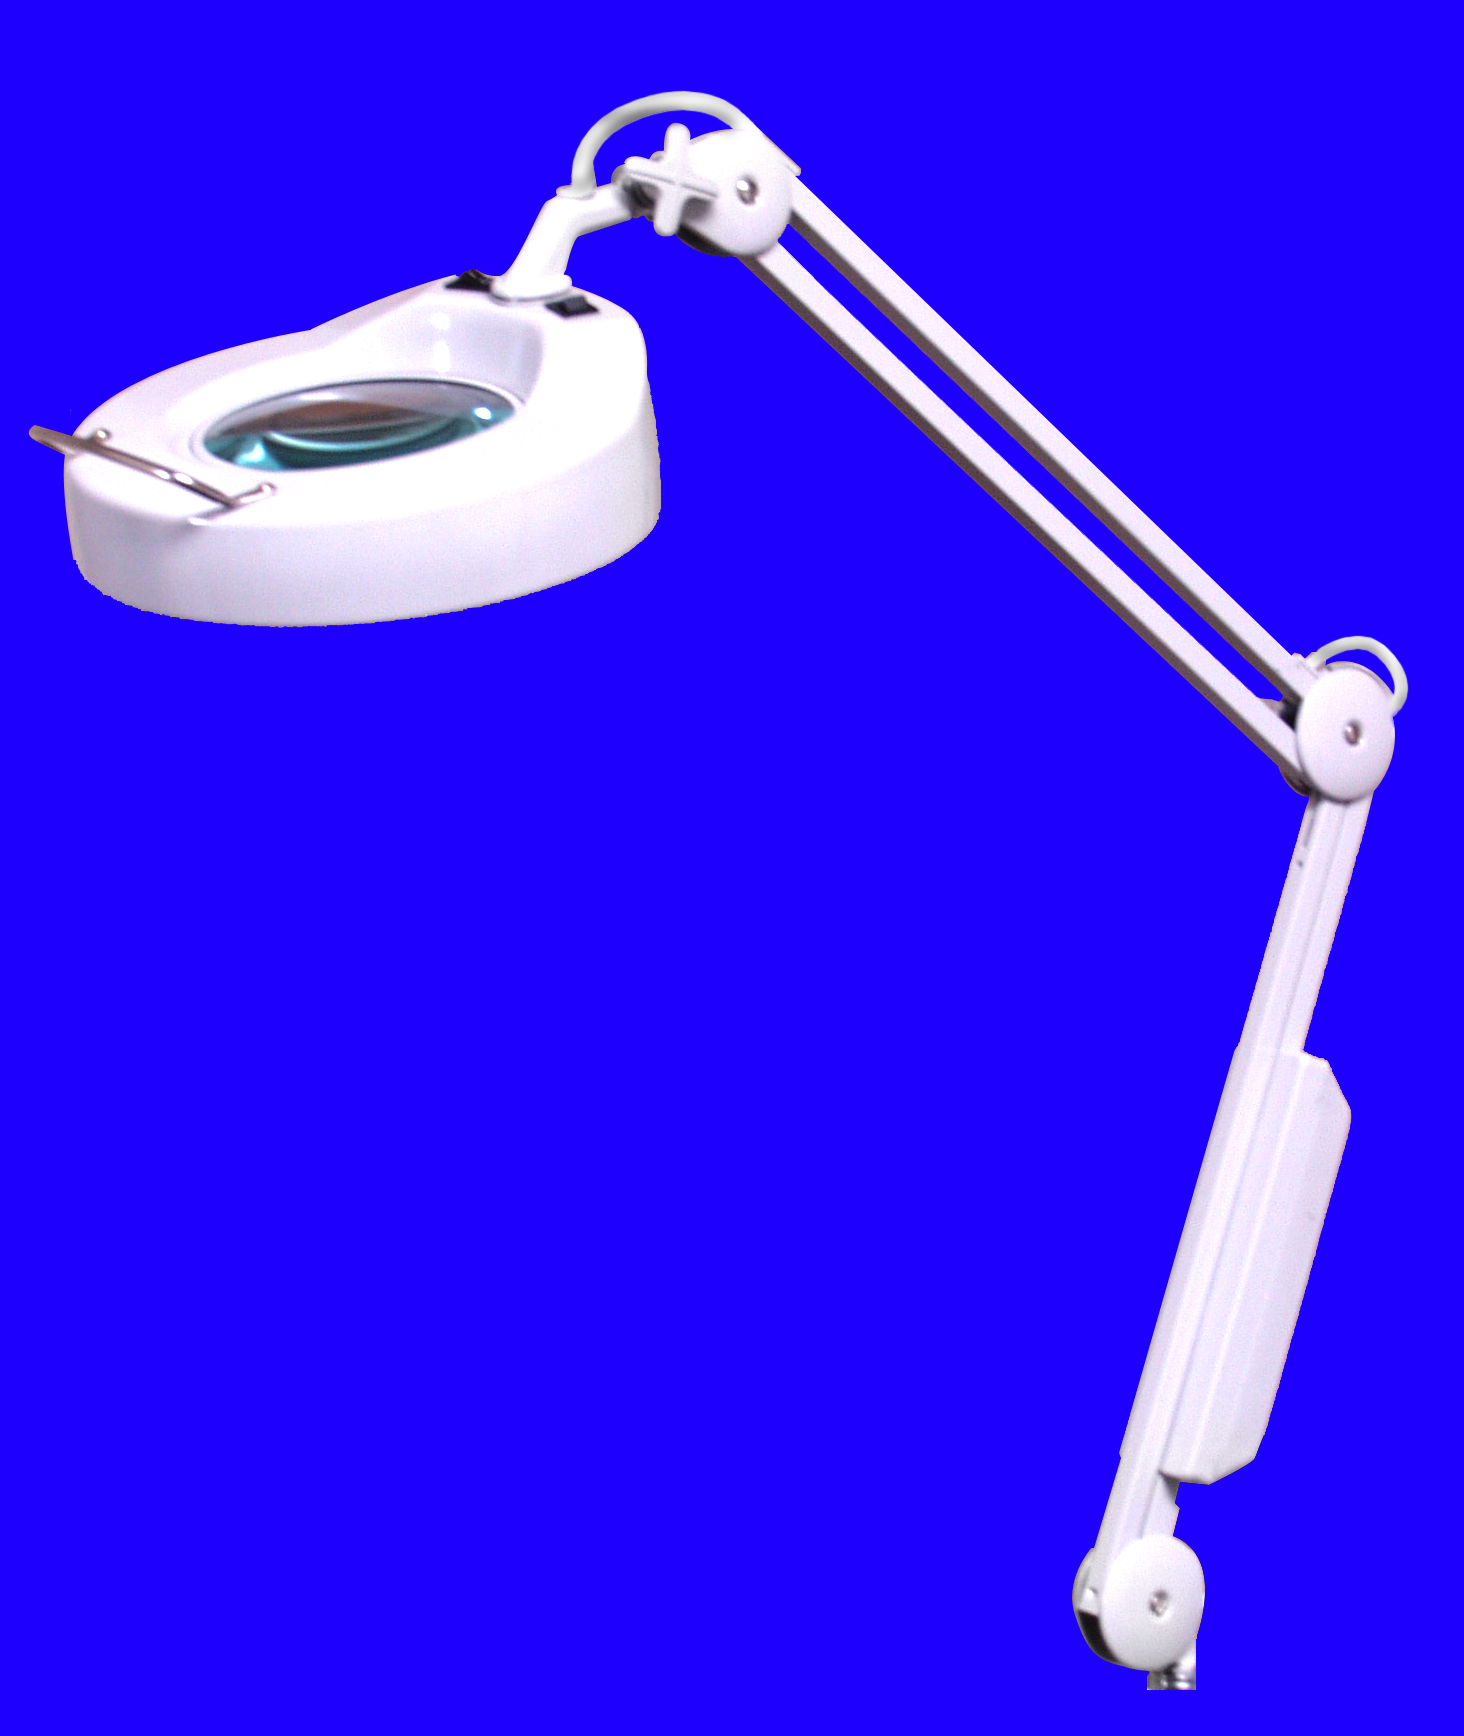 Wall Mount Magnifying Lamp : Brandt Industries - Lamps - Illuminated Magnifiers - 5 Diopter Illuminated Magnifier Lamp Wall Mount